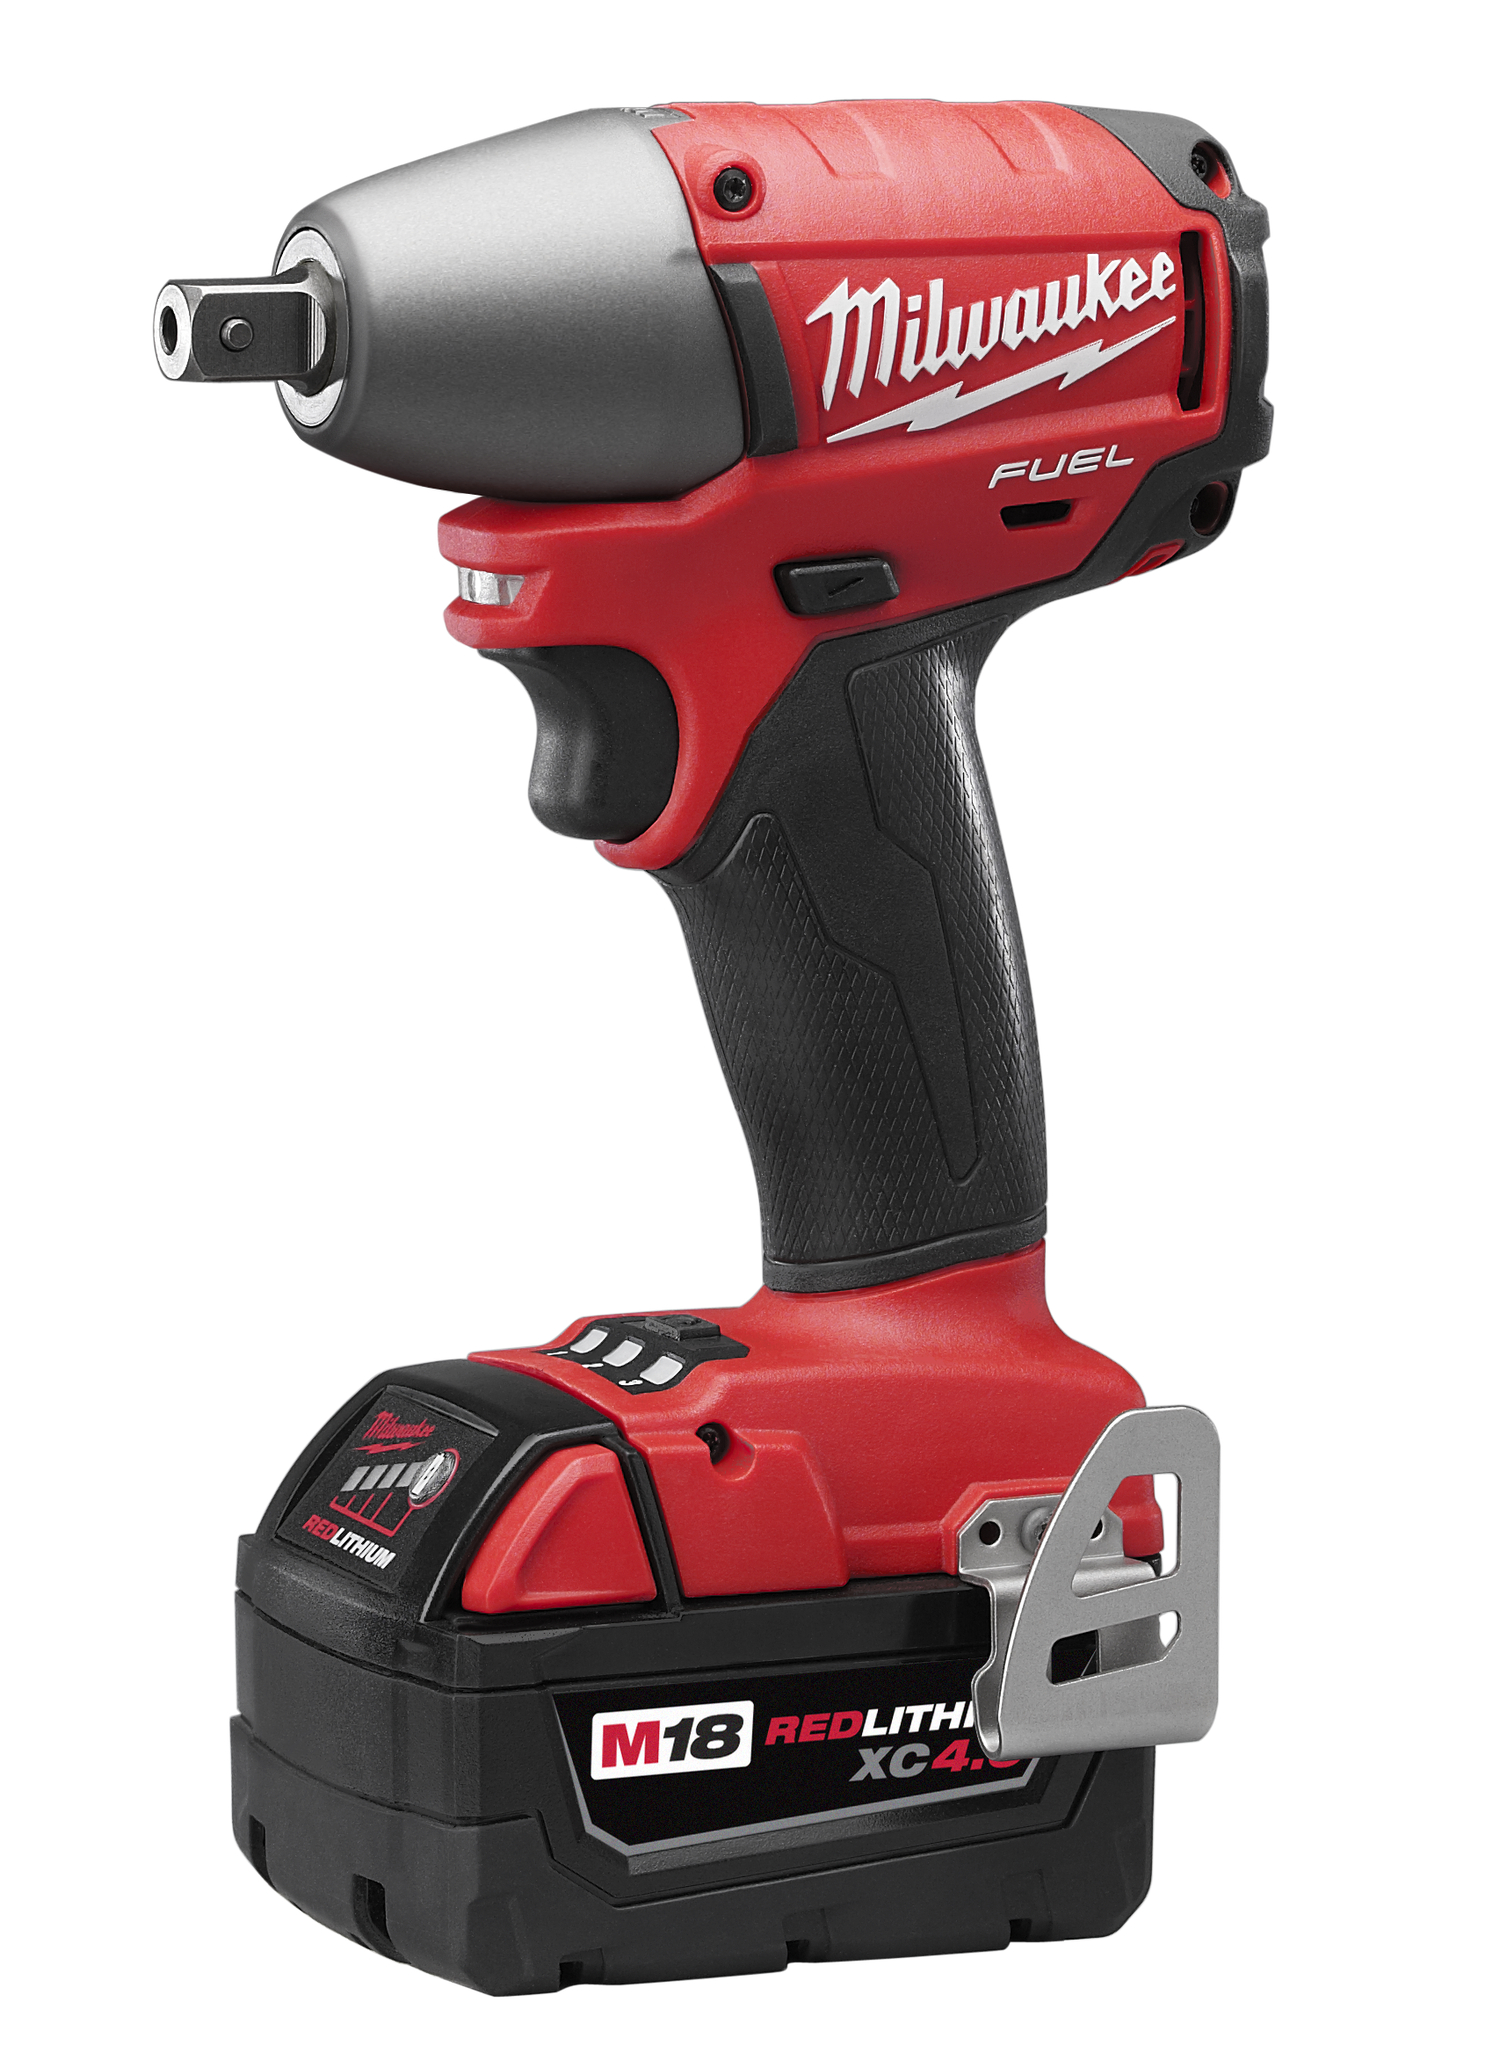 milwaukee m18 1 2 impact wrench review